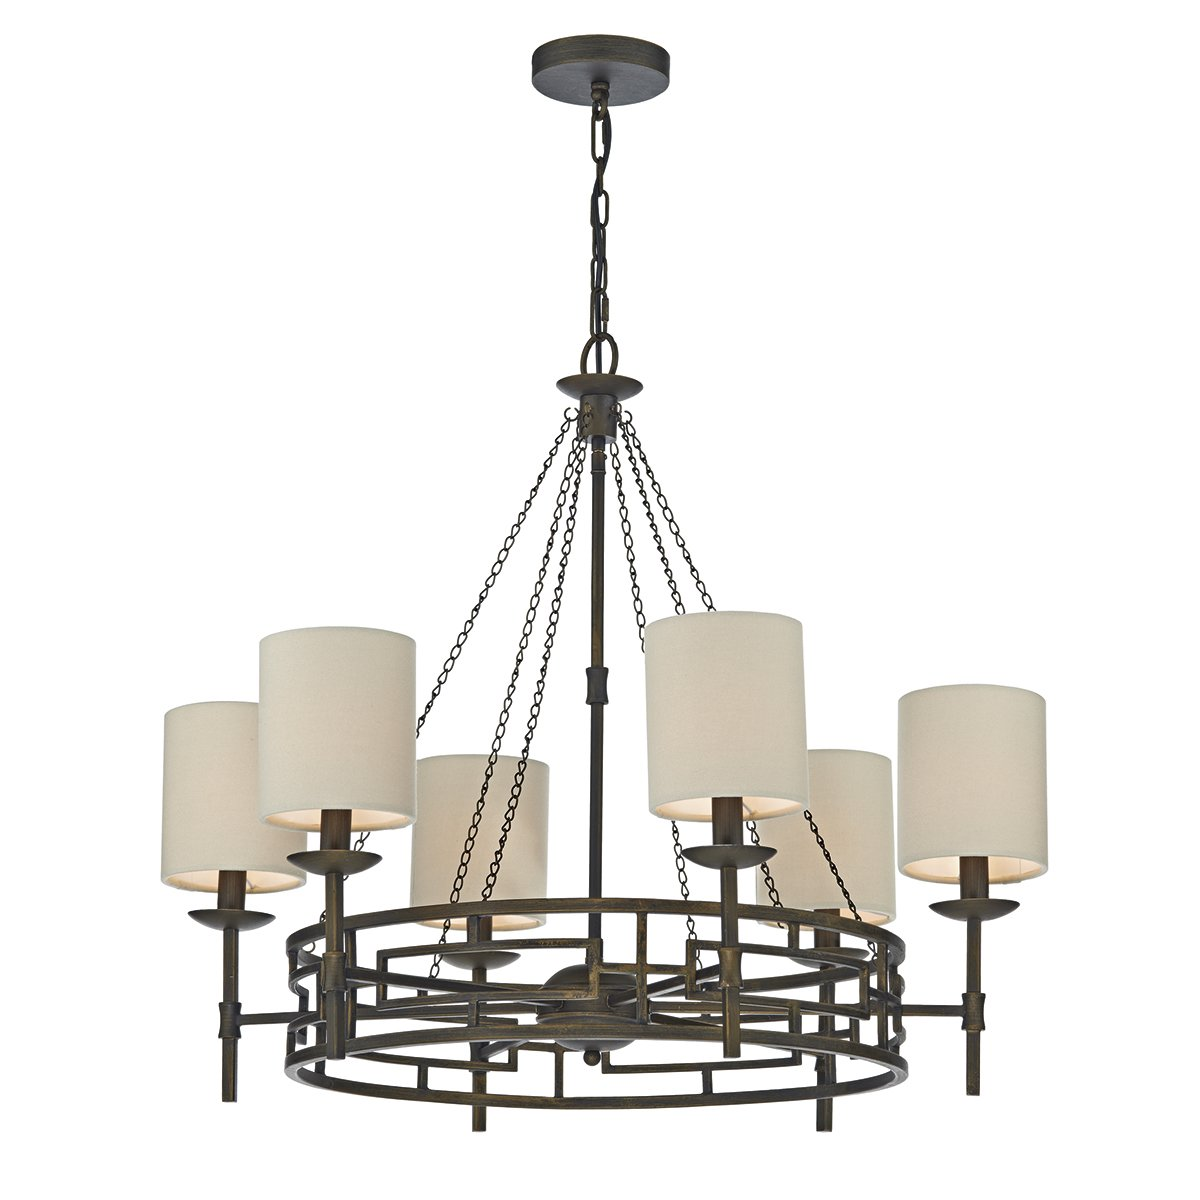 Dar EMM1350 Emma 9 Light Chandelier in Chrome & Crystal